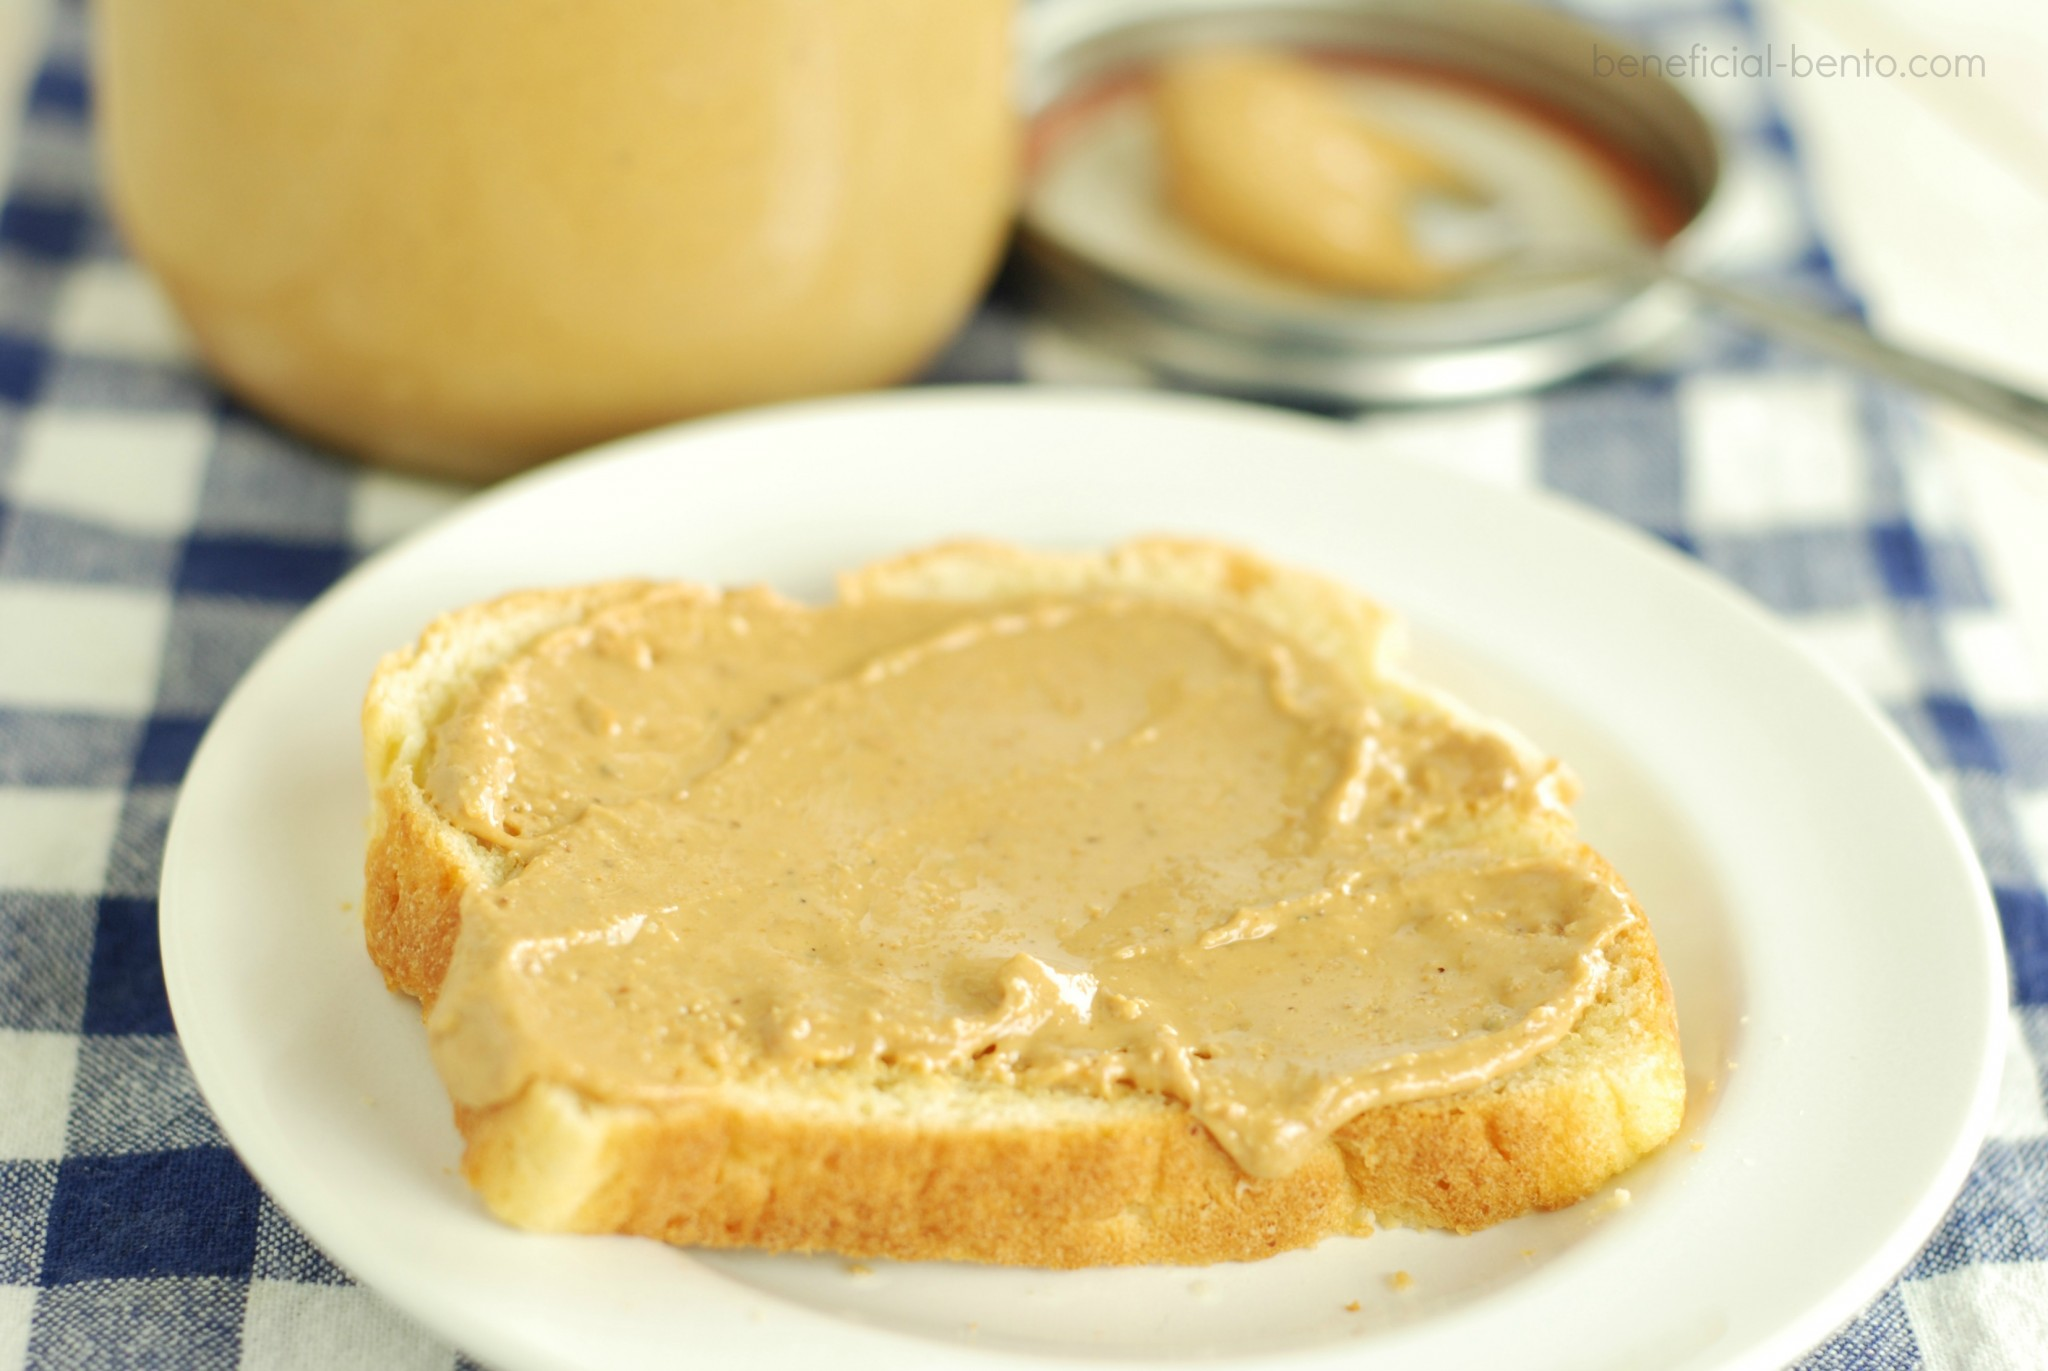 Coconut Cashew Butter recipe - make your own! It's SO much better than store bought!